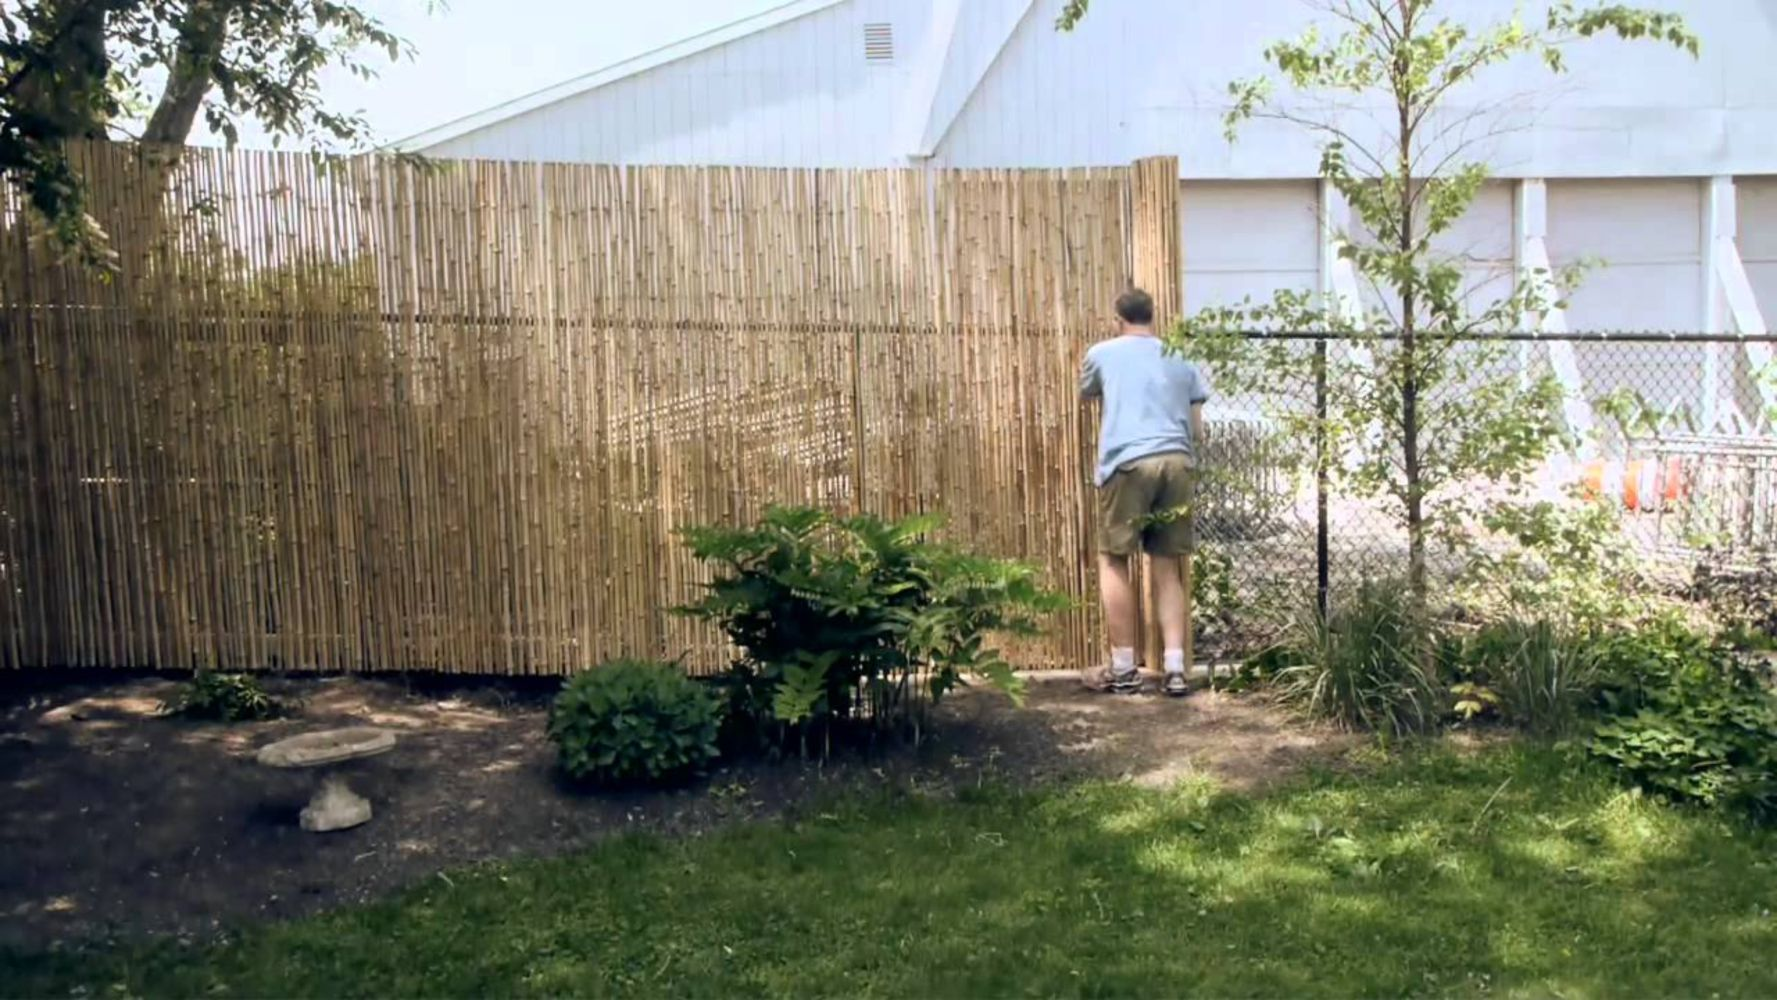 How to make a wattle fence cheaply